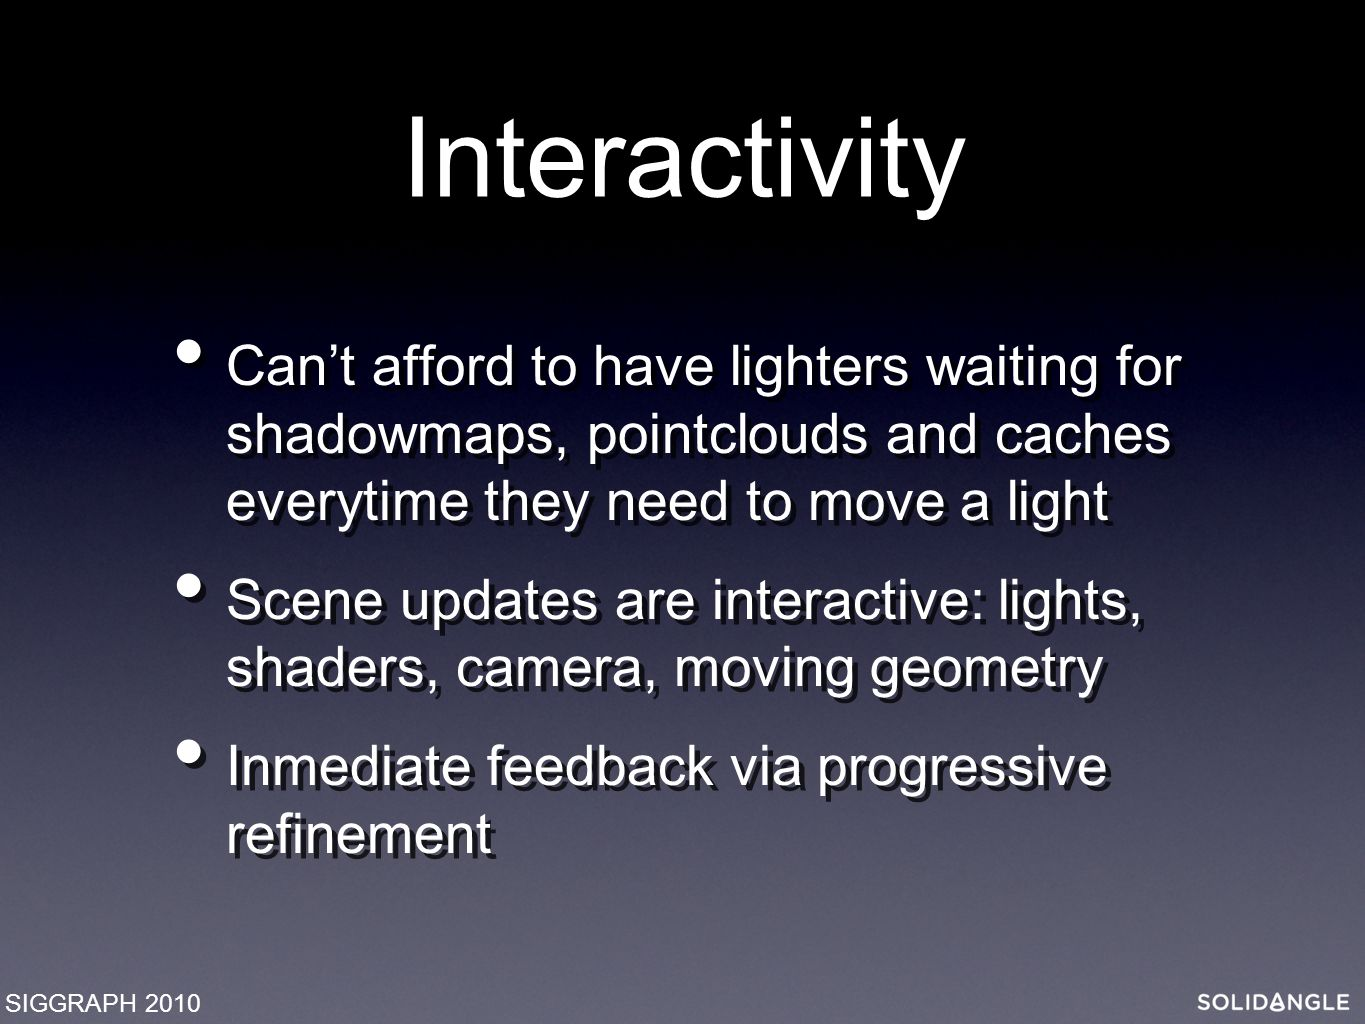 Interactivity Can't afford to have lighters waiting for shadowmaps, pointclouds and caches everytime they need to move a light Scene updates are interactive: lights, shaders, camera, moving geometry Inmediate feedback via progressive refinement Can't afford to have lighters waiting for shadowmaps, pointclouds and caches everytime they need to move a light Scene updates are interactive: lights, shaders, camera, moving geometry Inmediate feedback via progressive refinement SIGGRAPH 2010